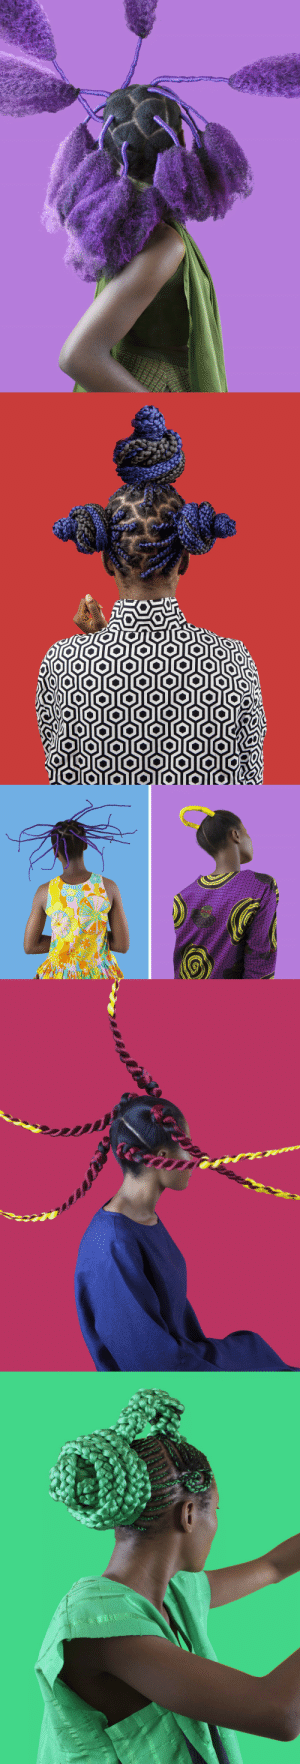 Tumblr, Blog, and Hair: itscolossal: Nigerian Hair Culture Documented in Rainbow-Hued Portraits by Medina Dugger